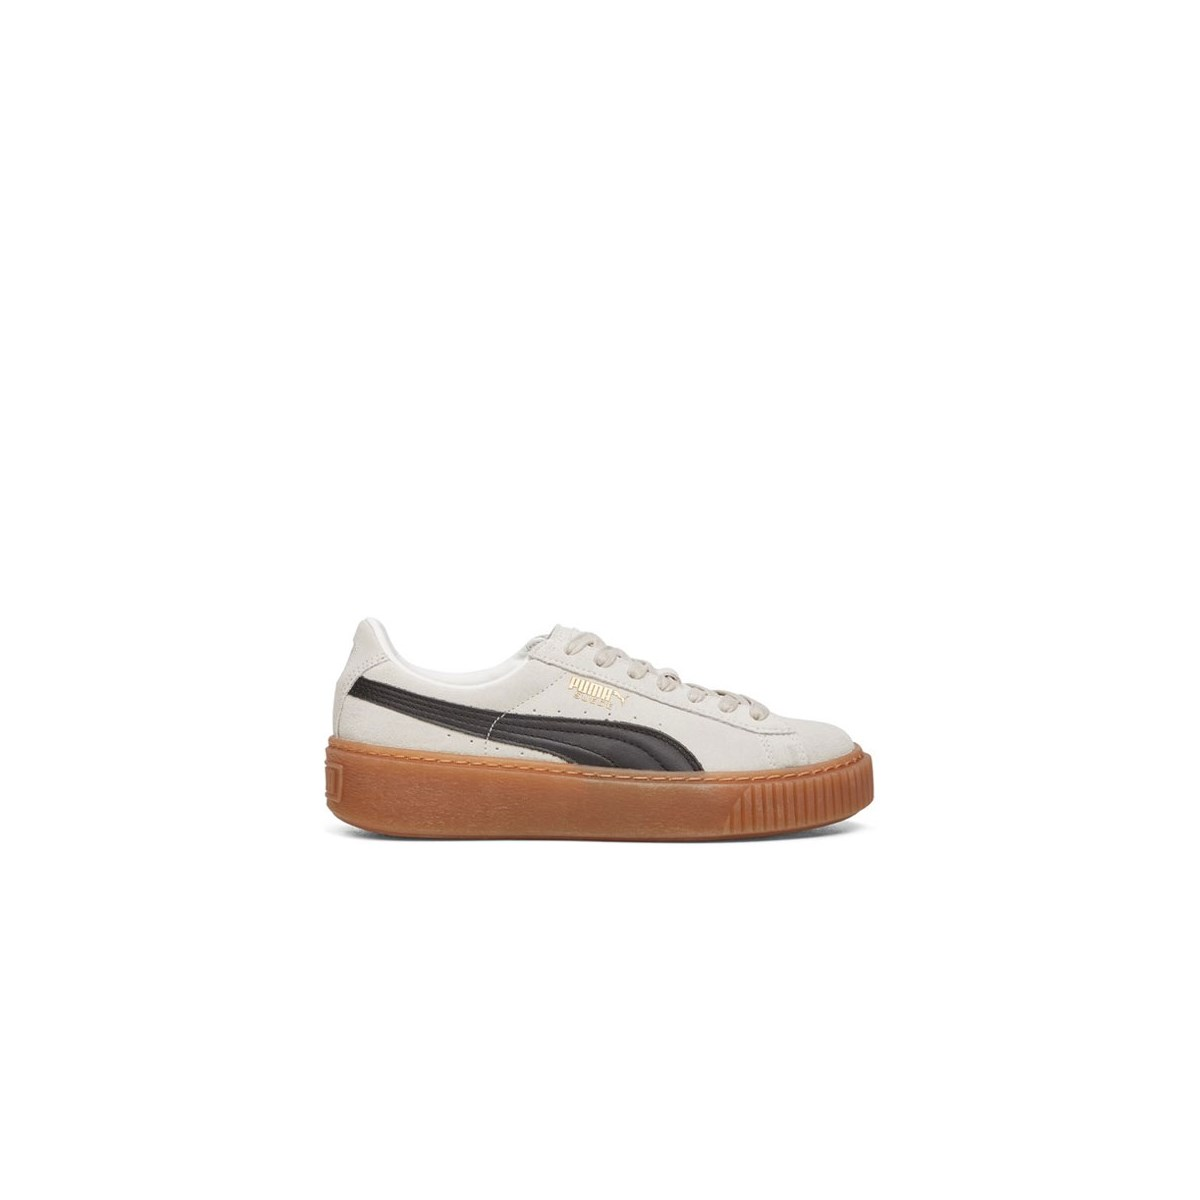 Women's Suede Platform Core White/Black Sneaker